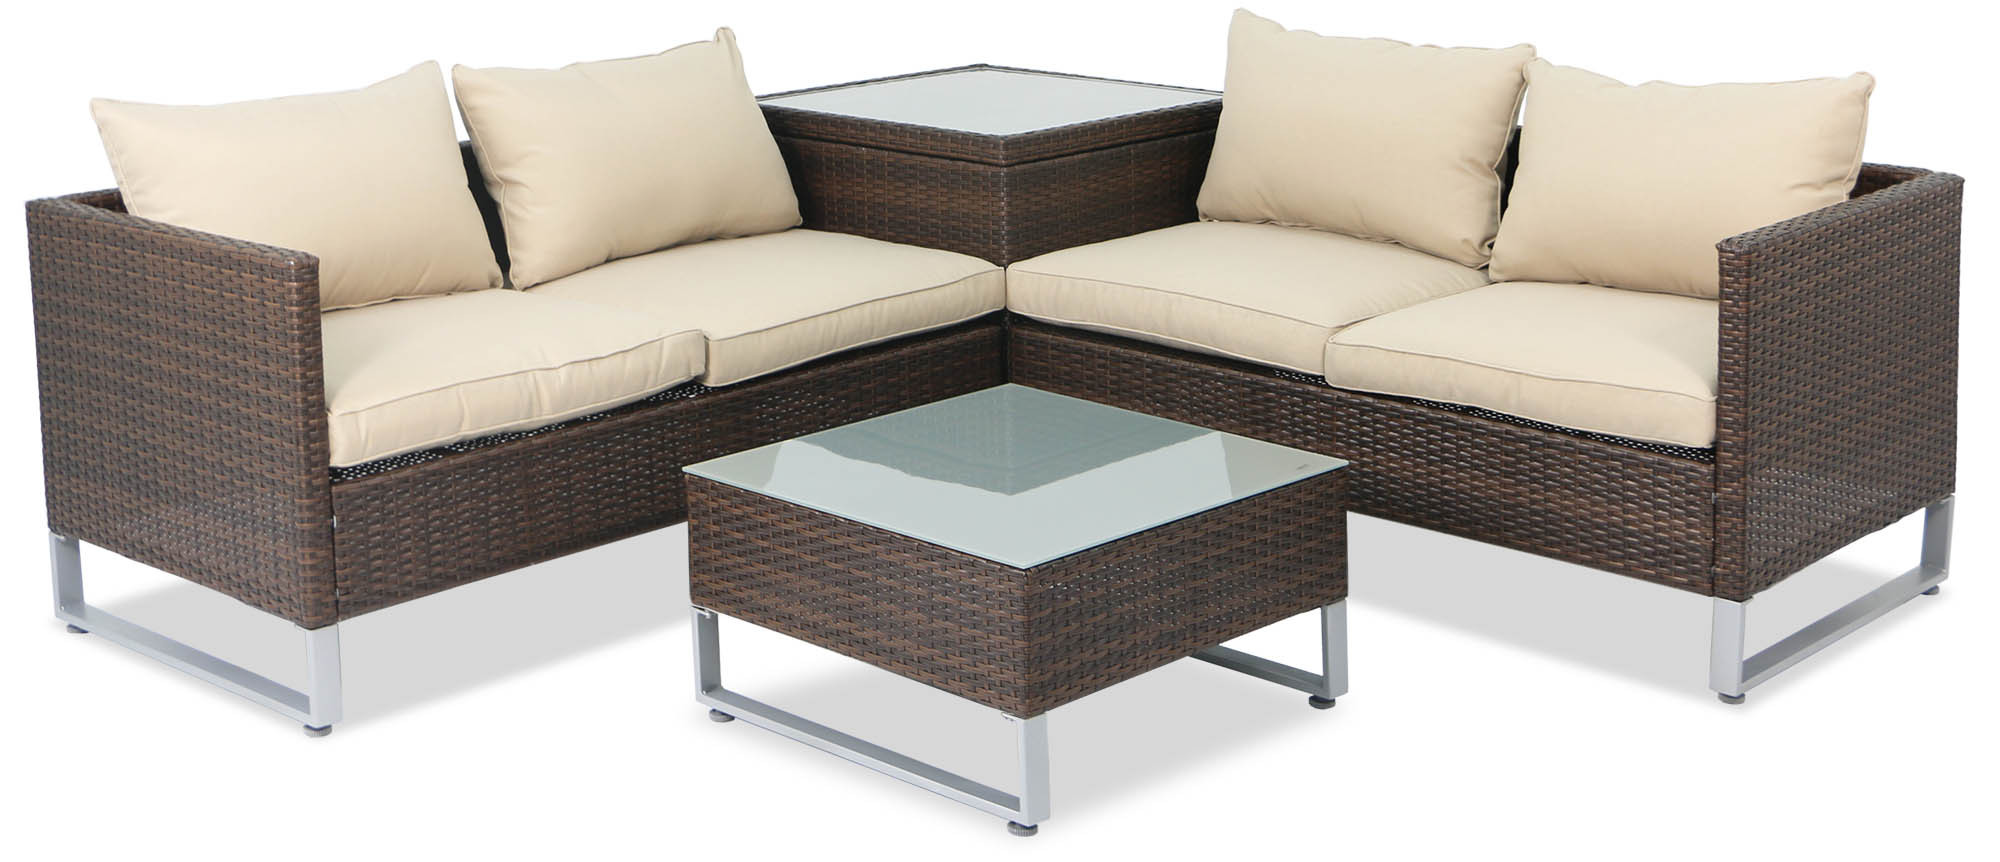 Royal Synthetic Rattan Outdoor Sofa Set With Storage Box Brown